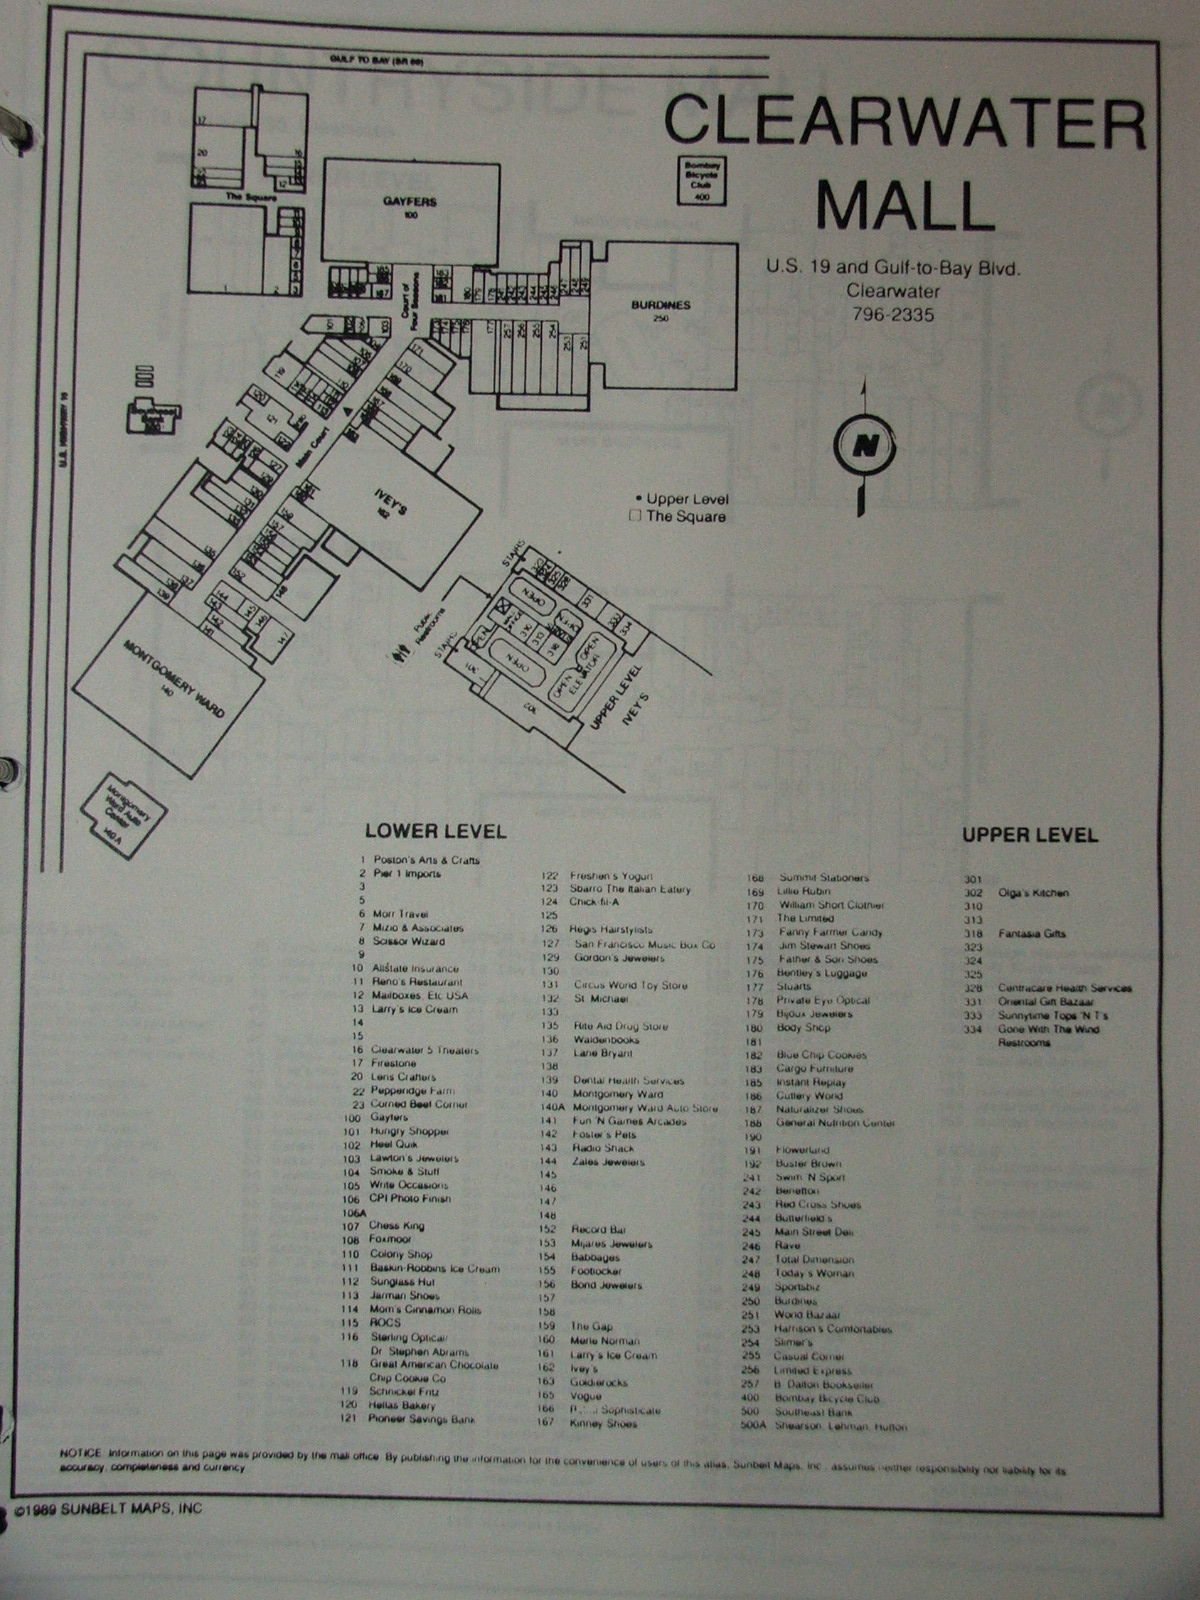 Sky City: Retail History: Clearwater Mall: Clearwater, FL